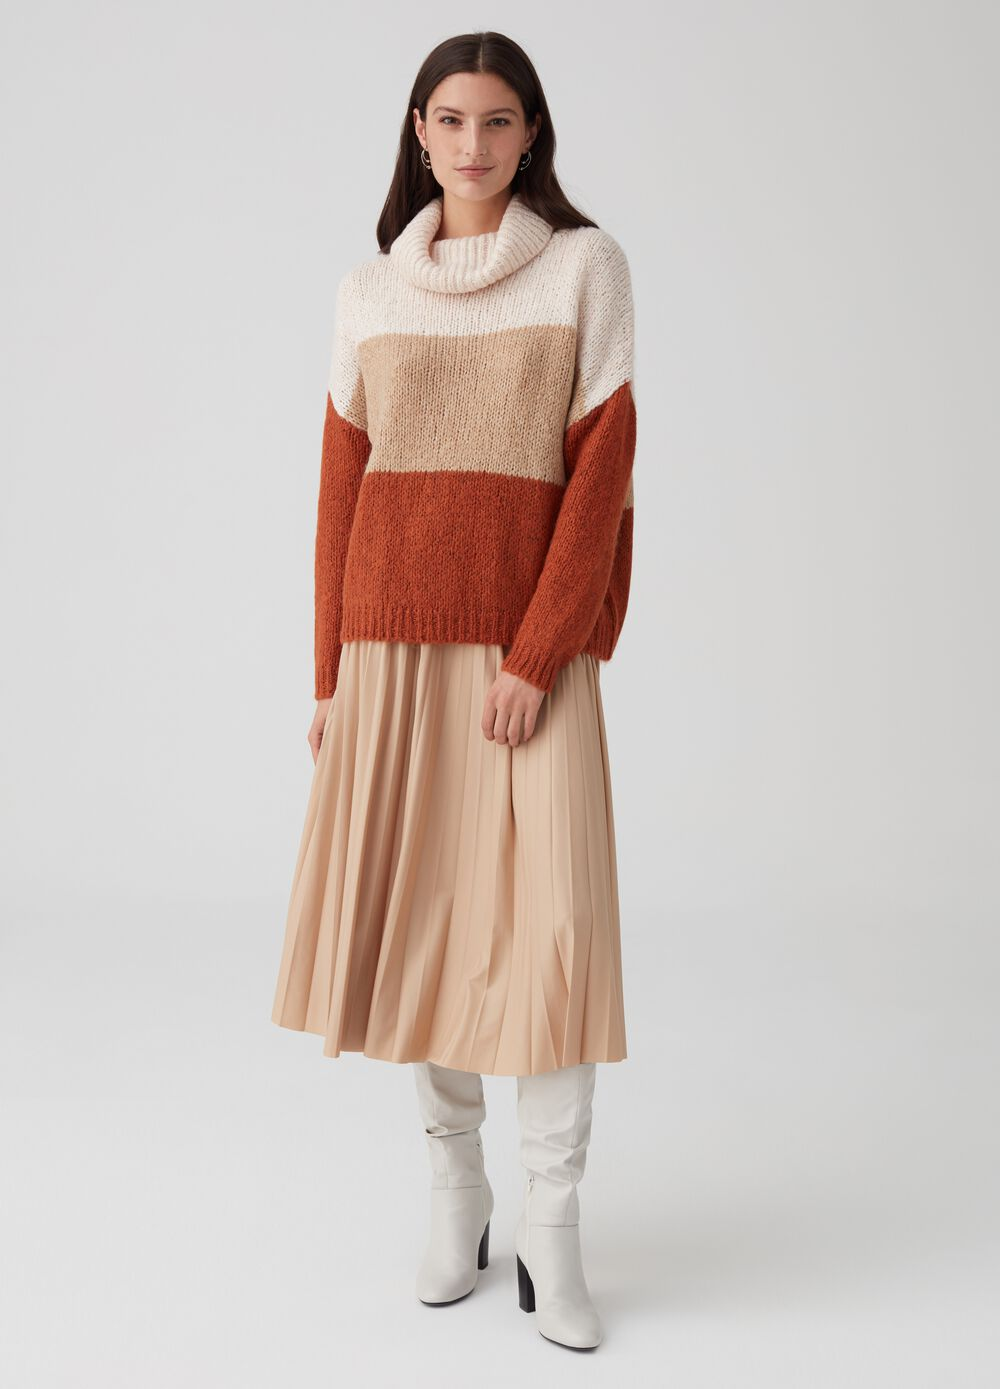 Knitted colourblock top with high neck